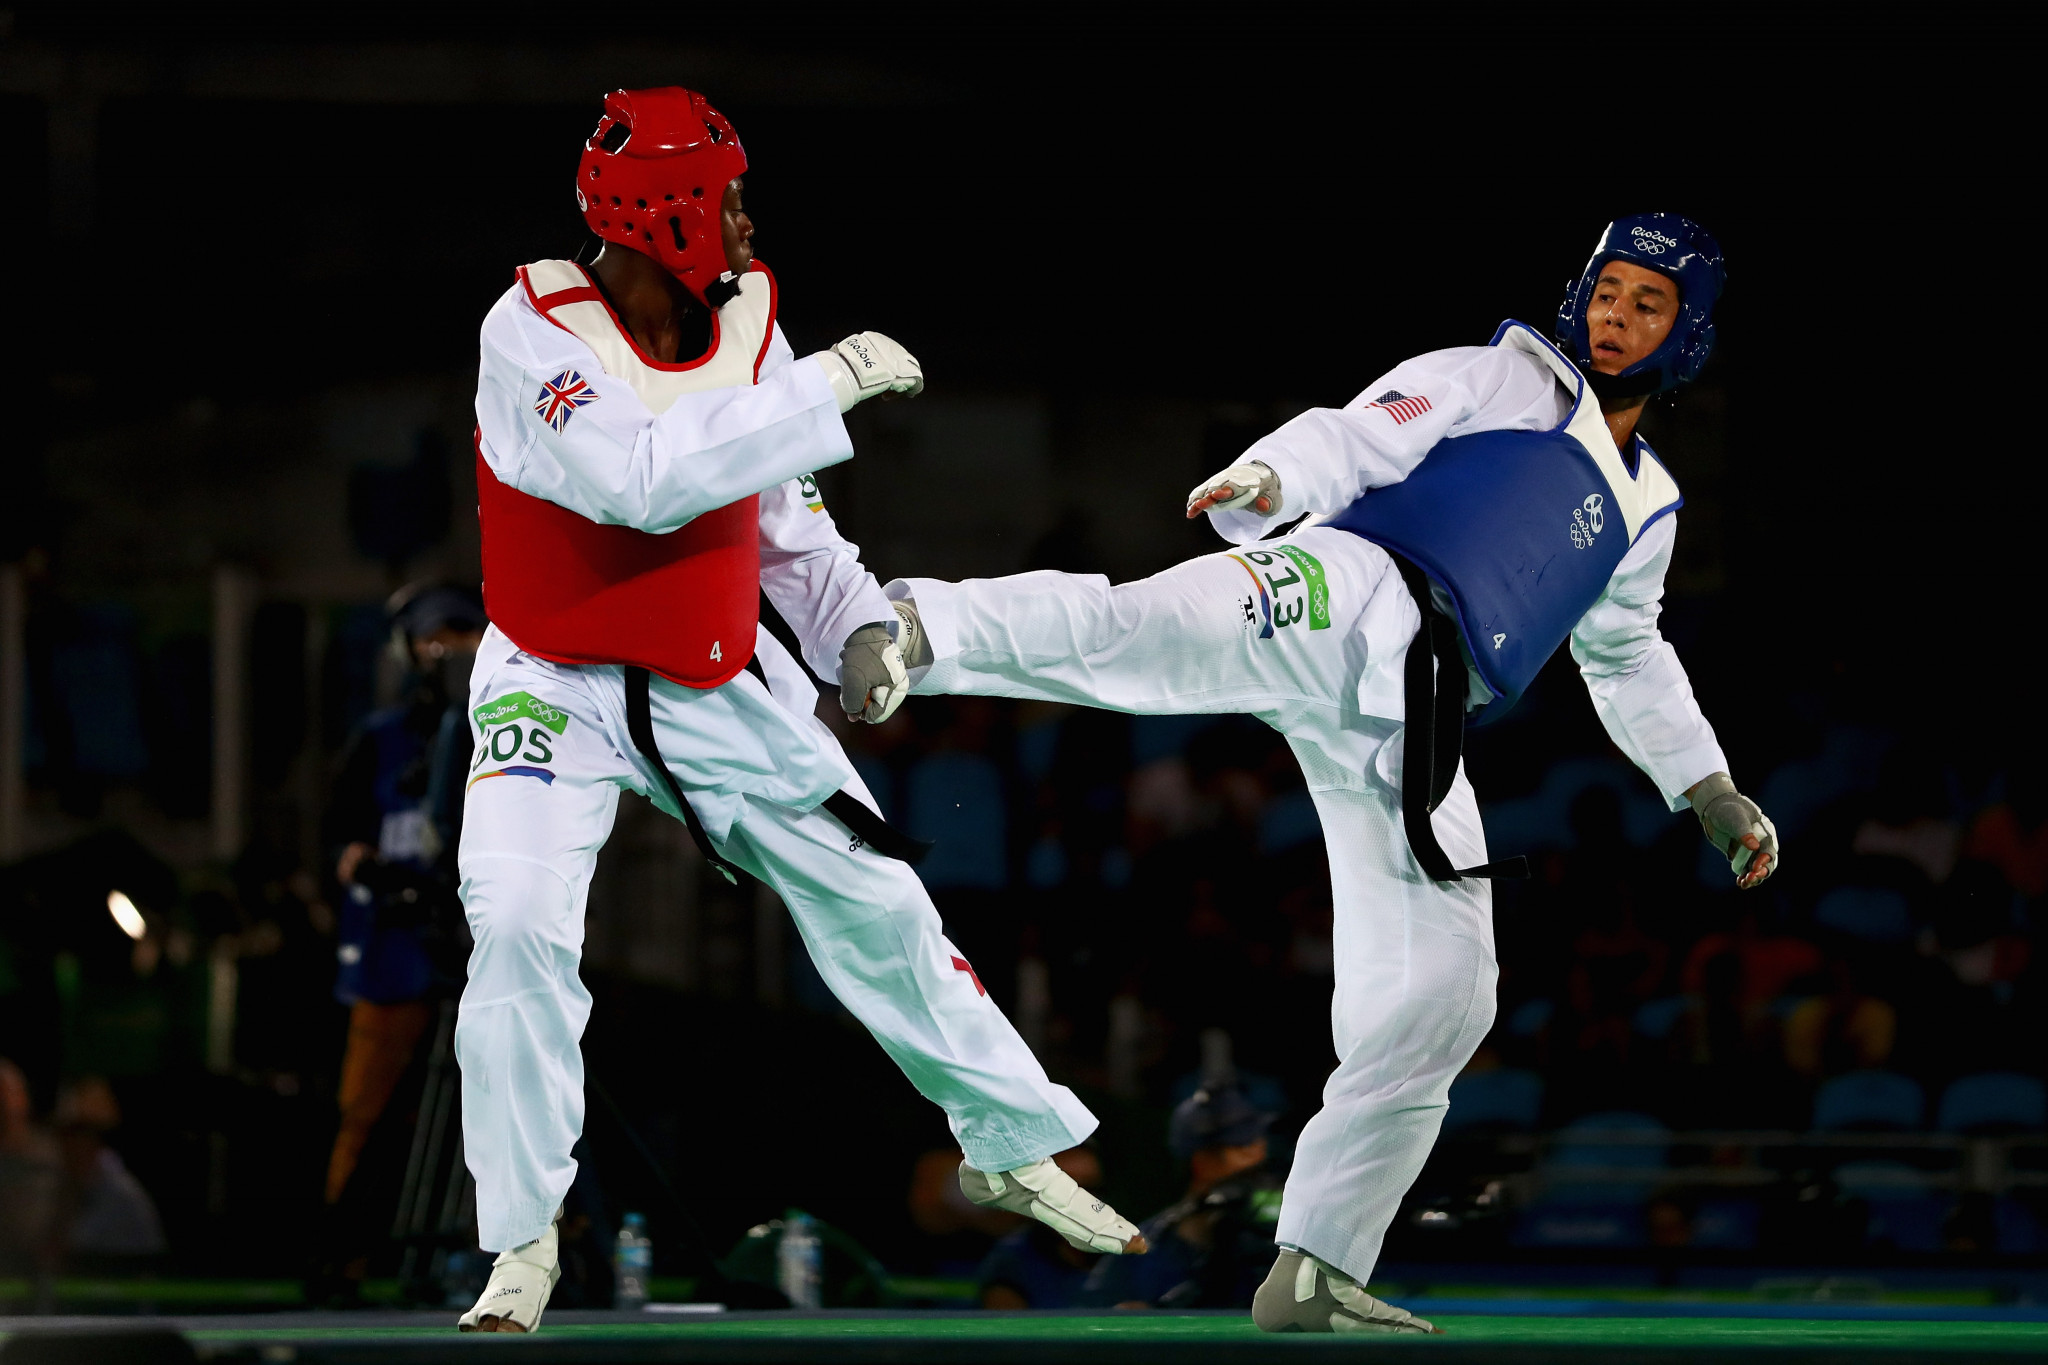 Taekwondo is not listed as either a compulsory or optional sport for the Commonwealth Games ©Getty Images